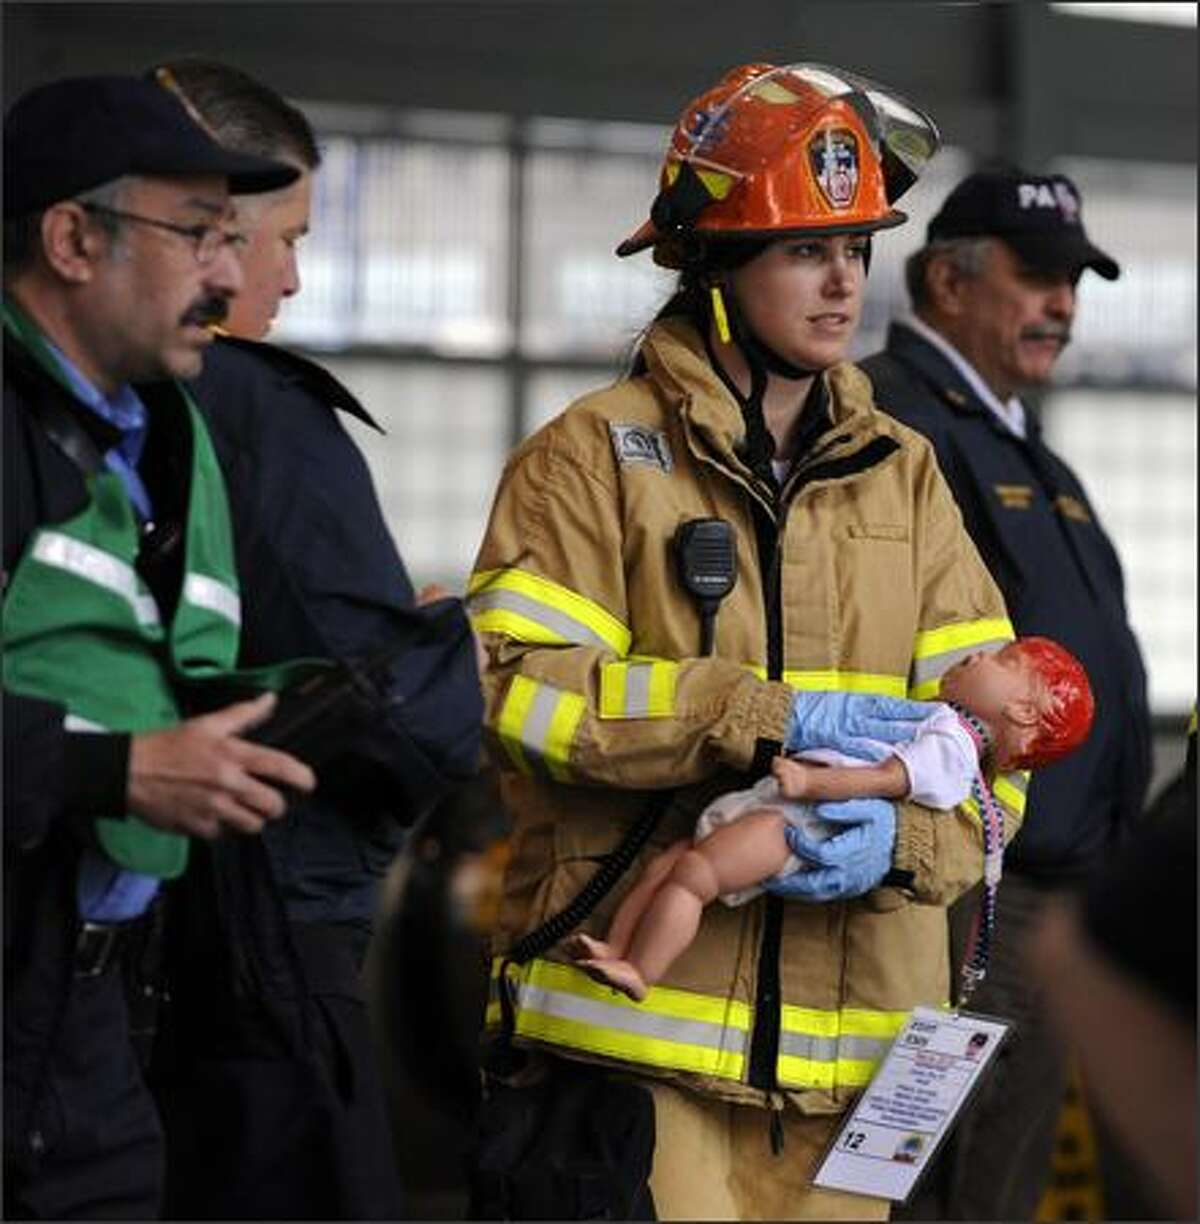 A New York City Fire Department EMS worker carries a dummy baby victim during Operation Safe PATH 2009 Sunday at the PATH station at the World Trade Center. Hundreds of firefighters and police swarmed Ground Zero Sunday, the site where the World Trade Center once stood, in the largest security exercise here since the Sept. 11, 2001 attacks. As part of an elaborate dress rehearsal for a possible future terror strike, rescue workers exploded simulated bombs in a commuter train tunnel linking Manhattan to New Jersey burrowed beneath the Hudson River.